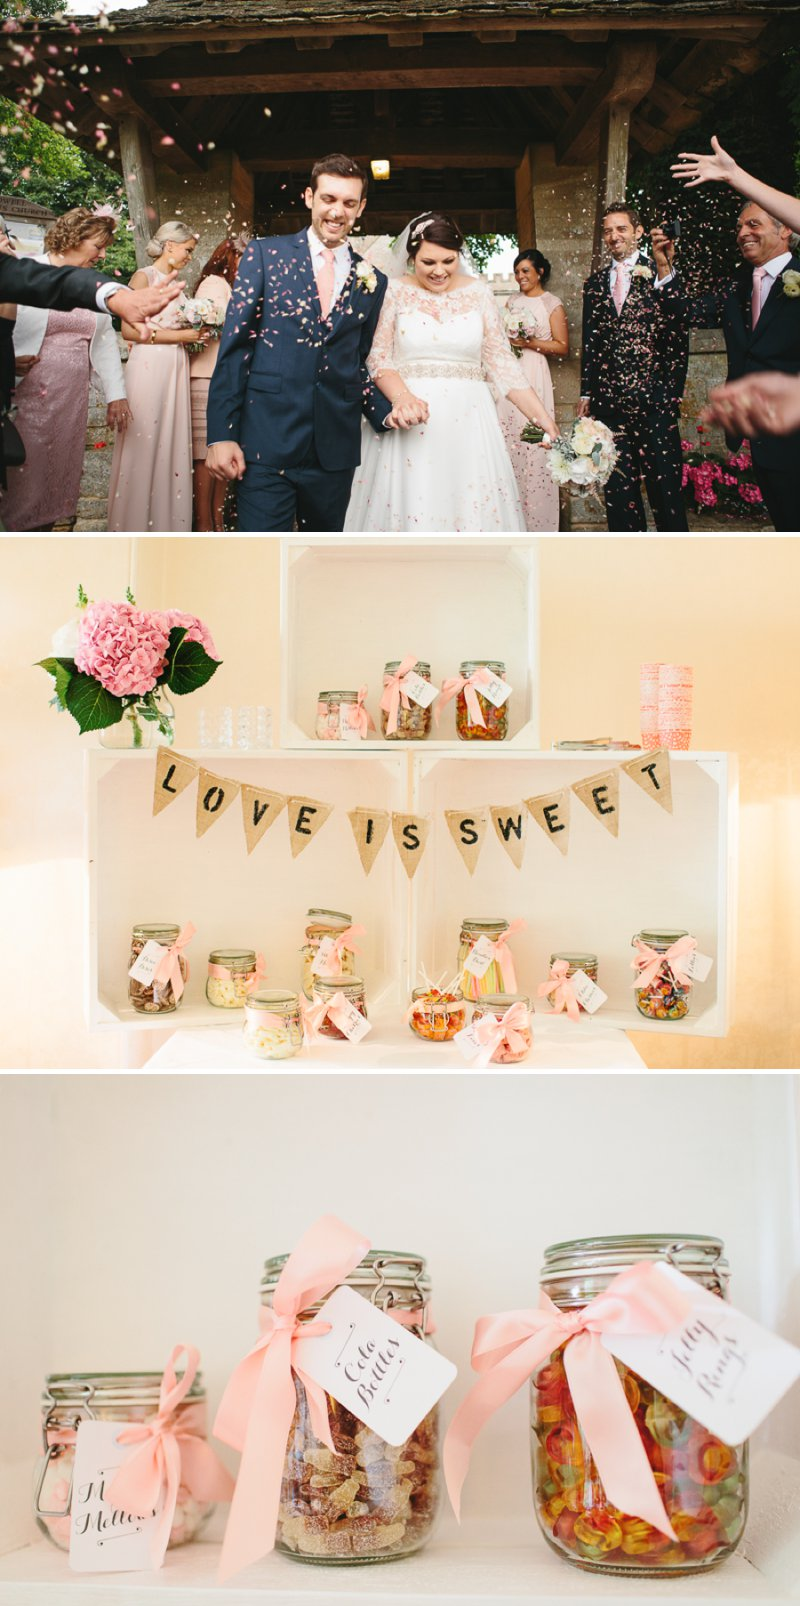 Blush Pink And Gold Glitter Themed Wedding At The Rectory Hotel With